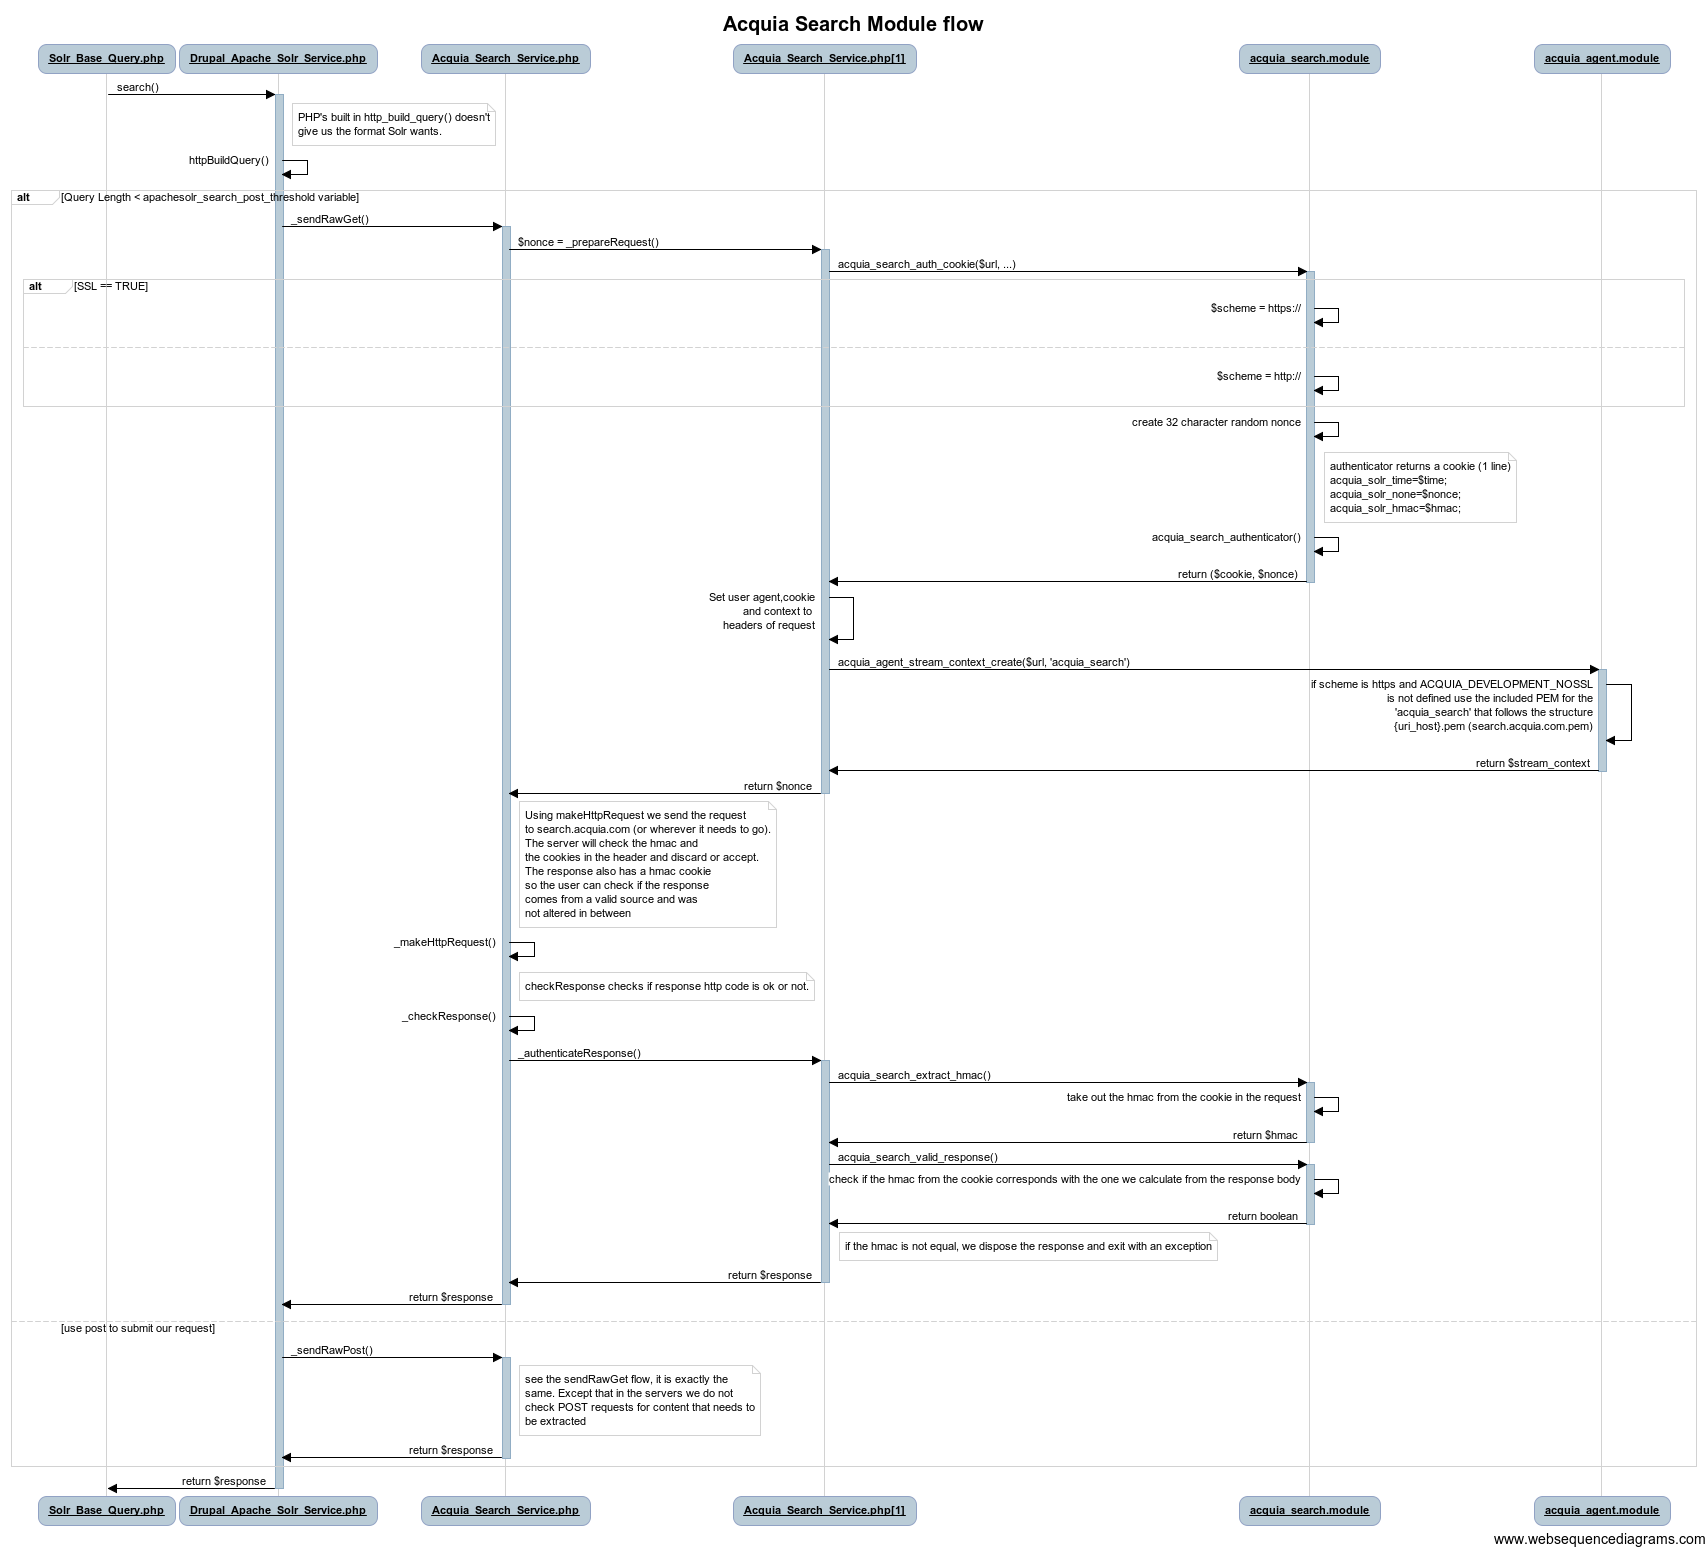 Sequence diagram flow diagram drupal acquia search module flow 1g ccuart Choice Image